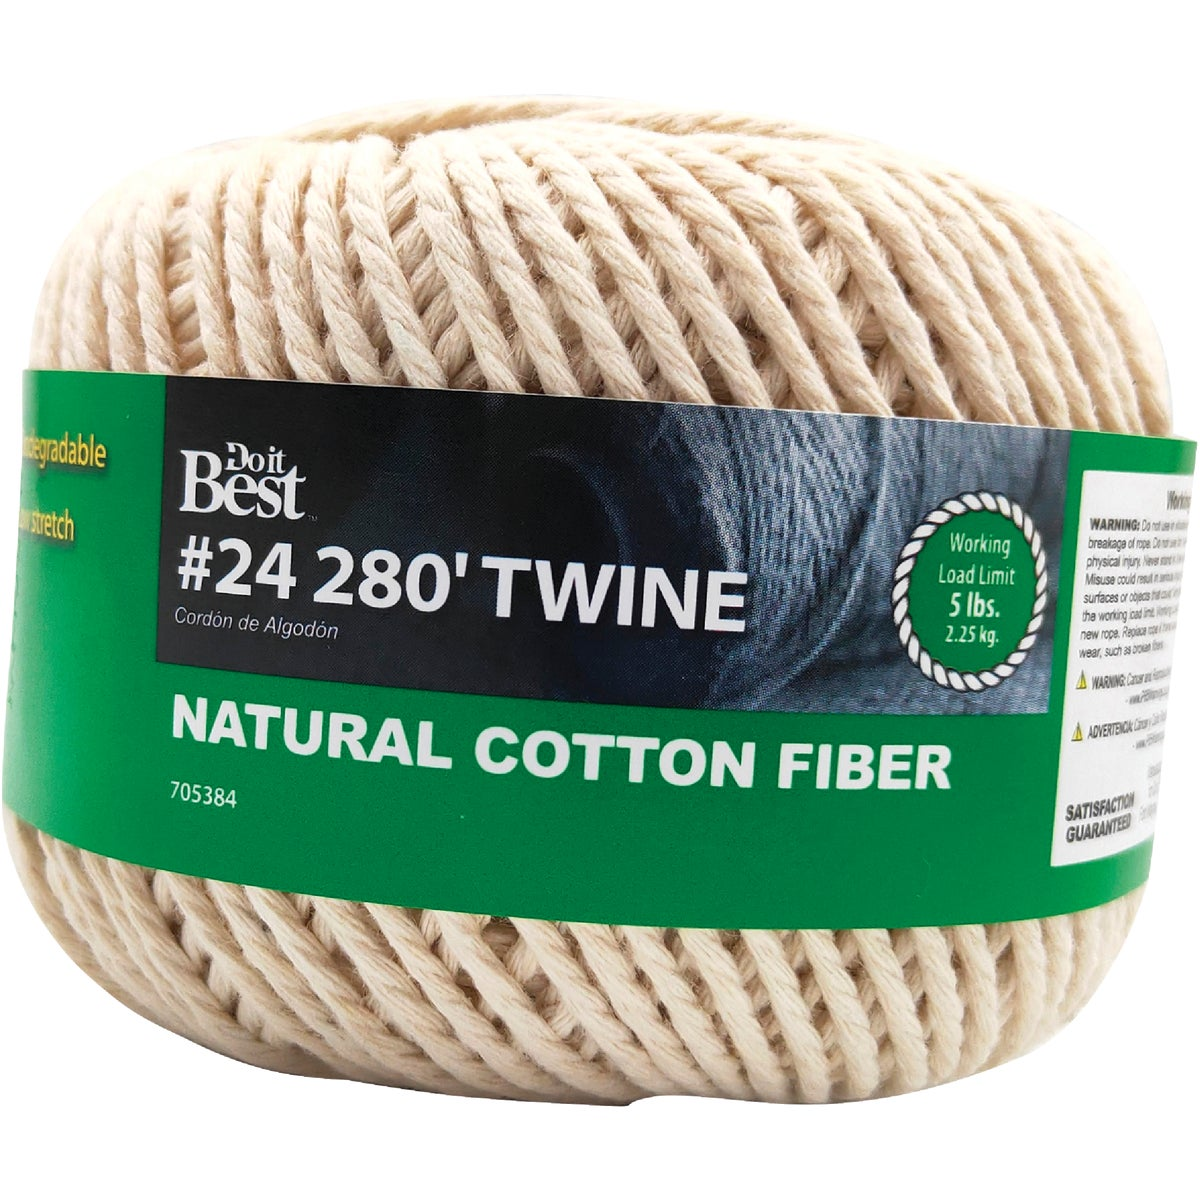 #24 280' COTTON TWINE - 705384 by Do it Best